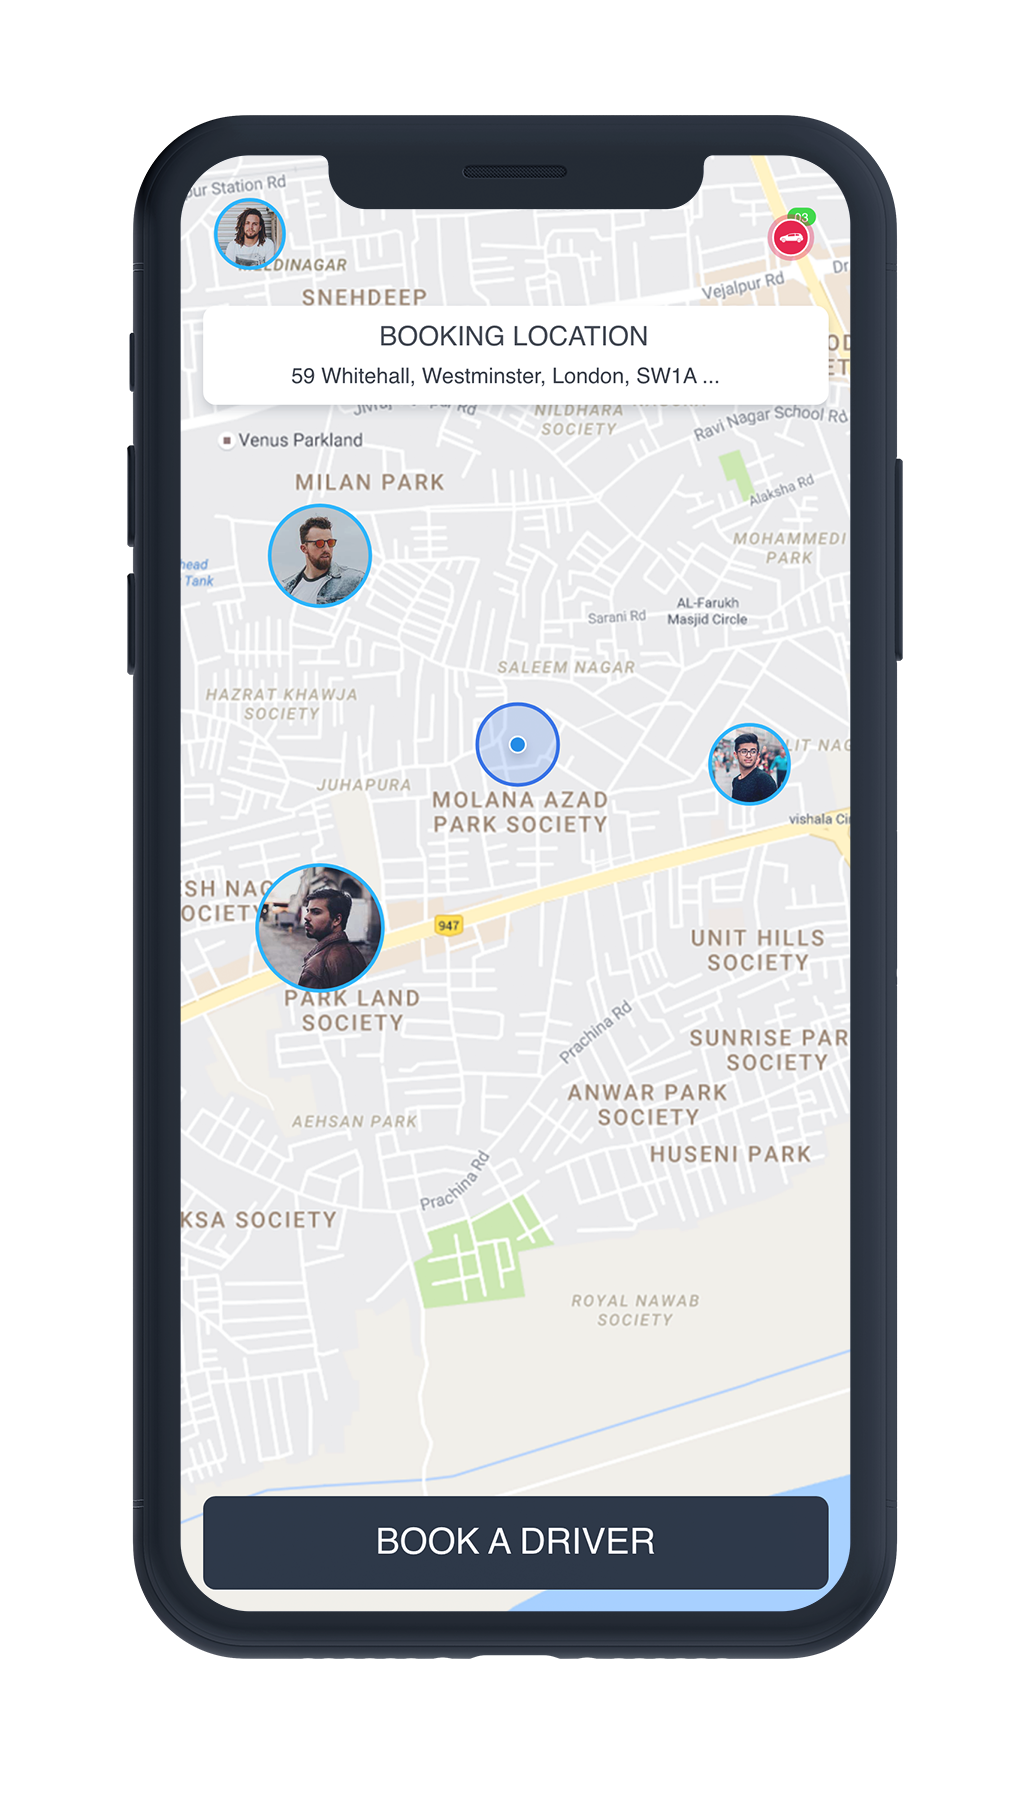 Uber for Designated Driver App & Designated Driver Software